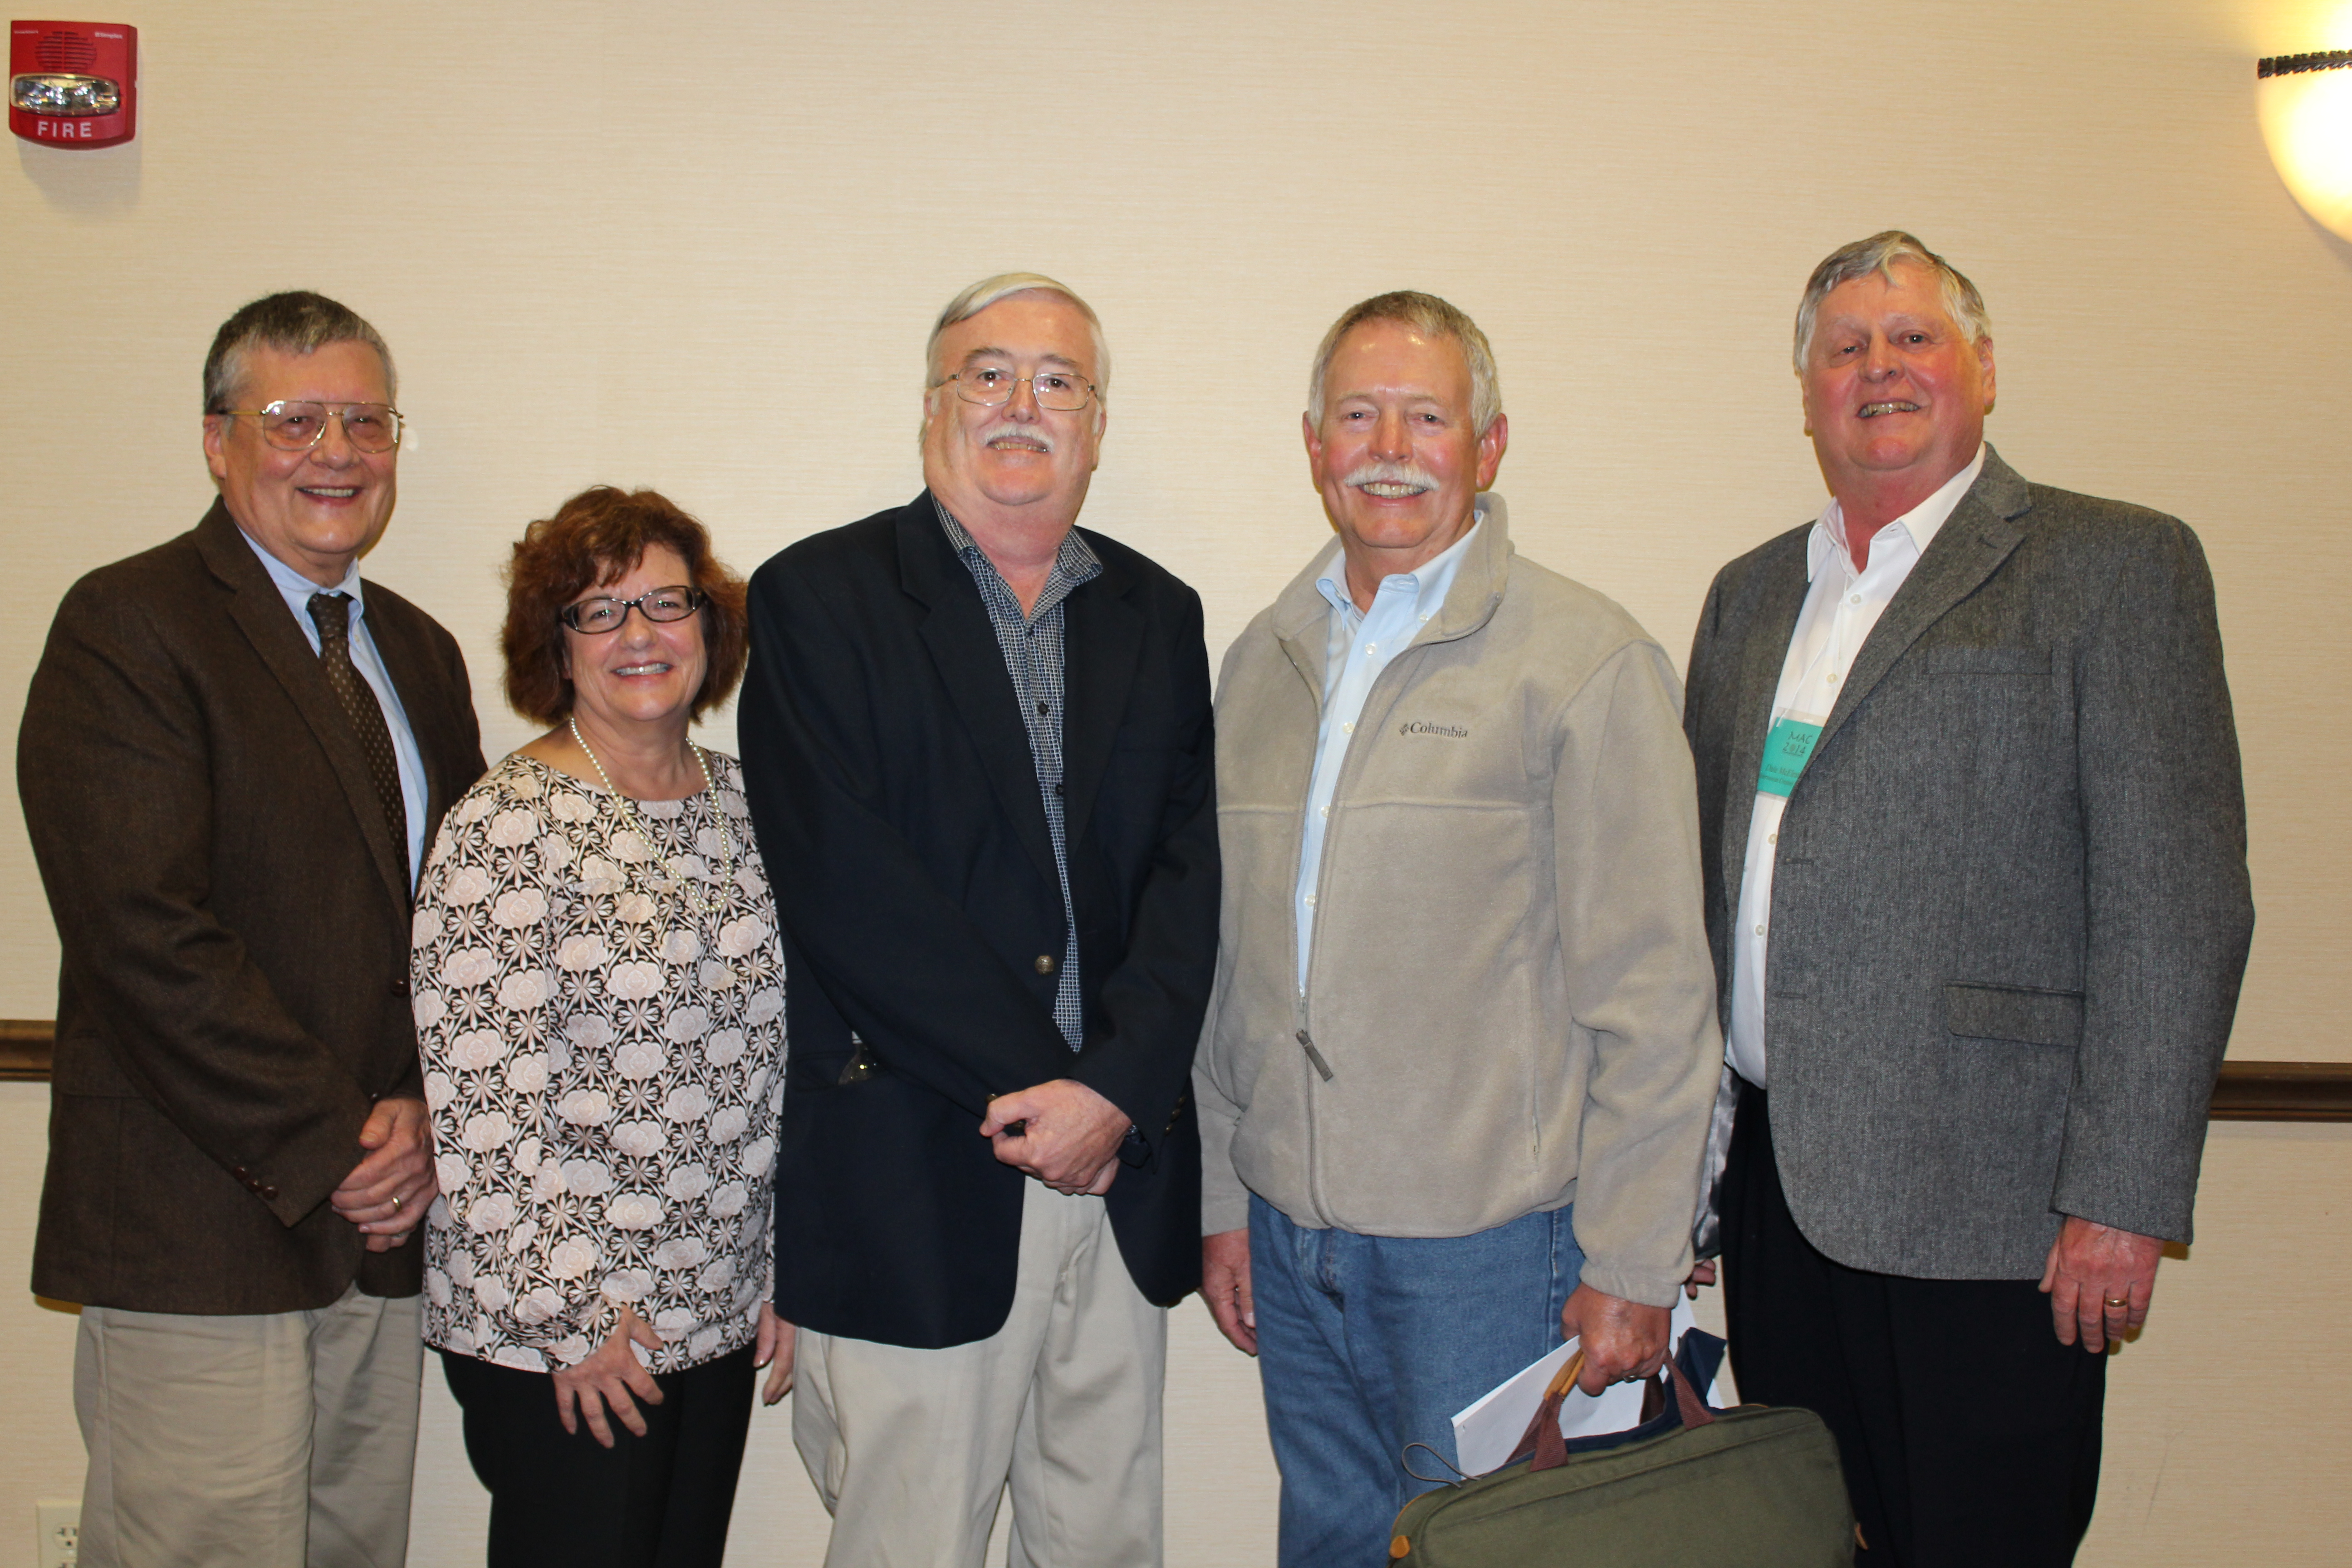 Dr. Thomas E. Emerson, Anne Haaker, Dr. Andrew C. Fortier, Len Stelle, and Dale McElrath (left to right)